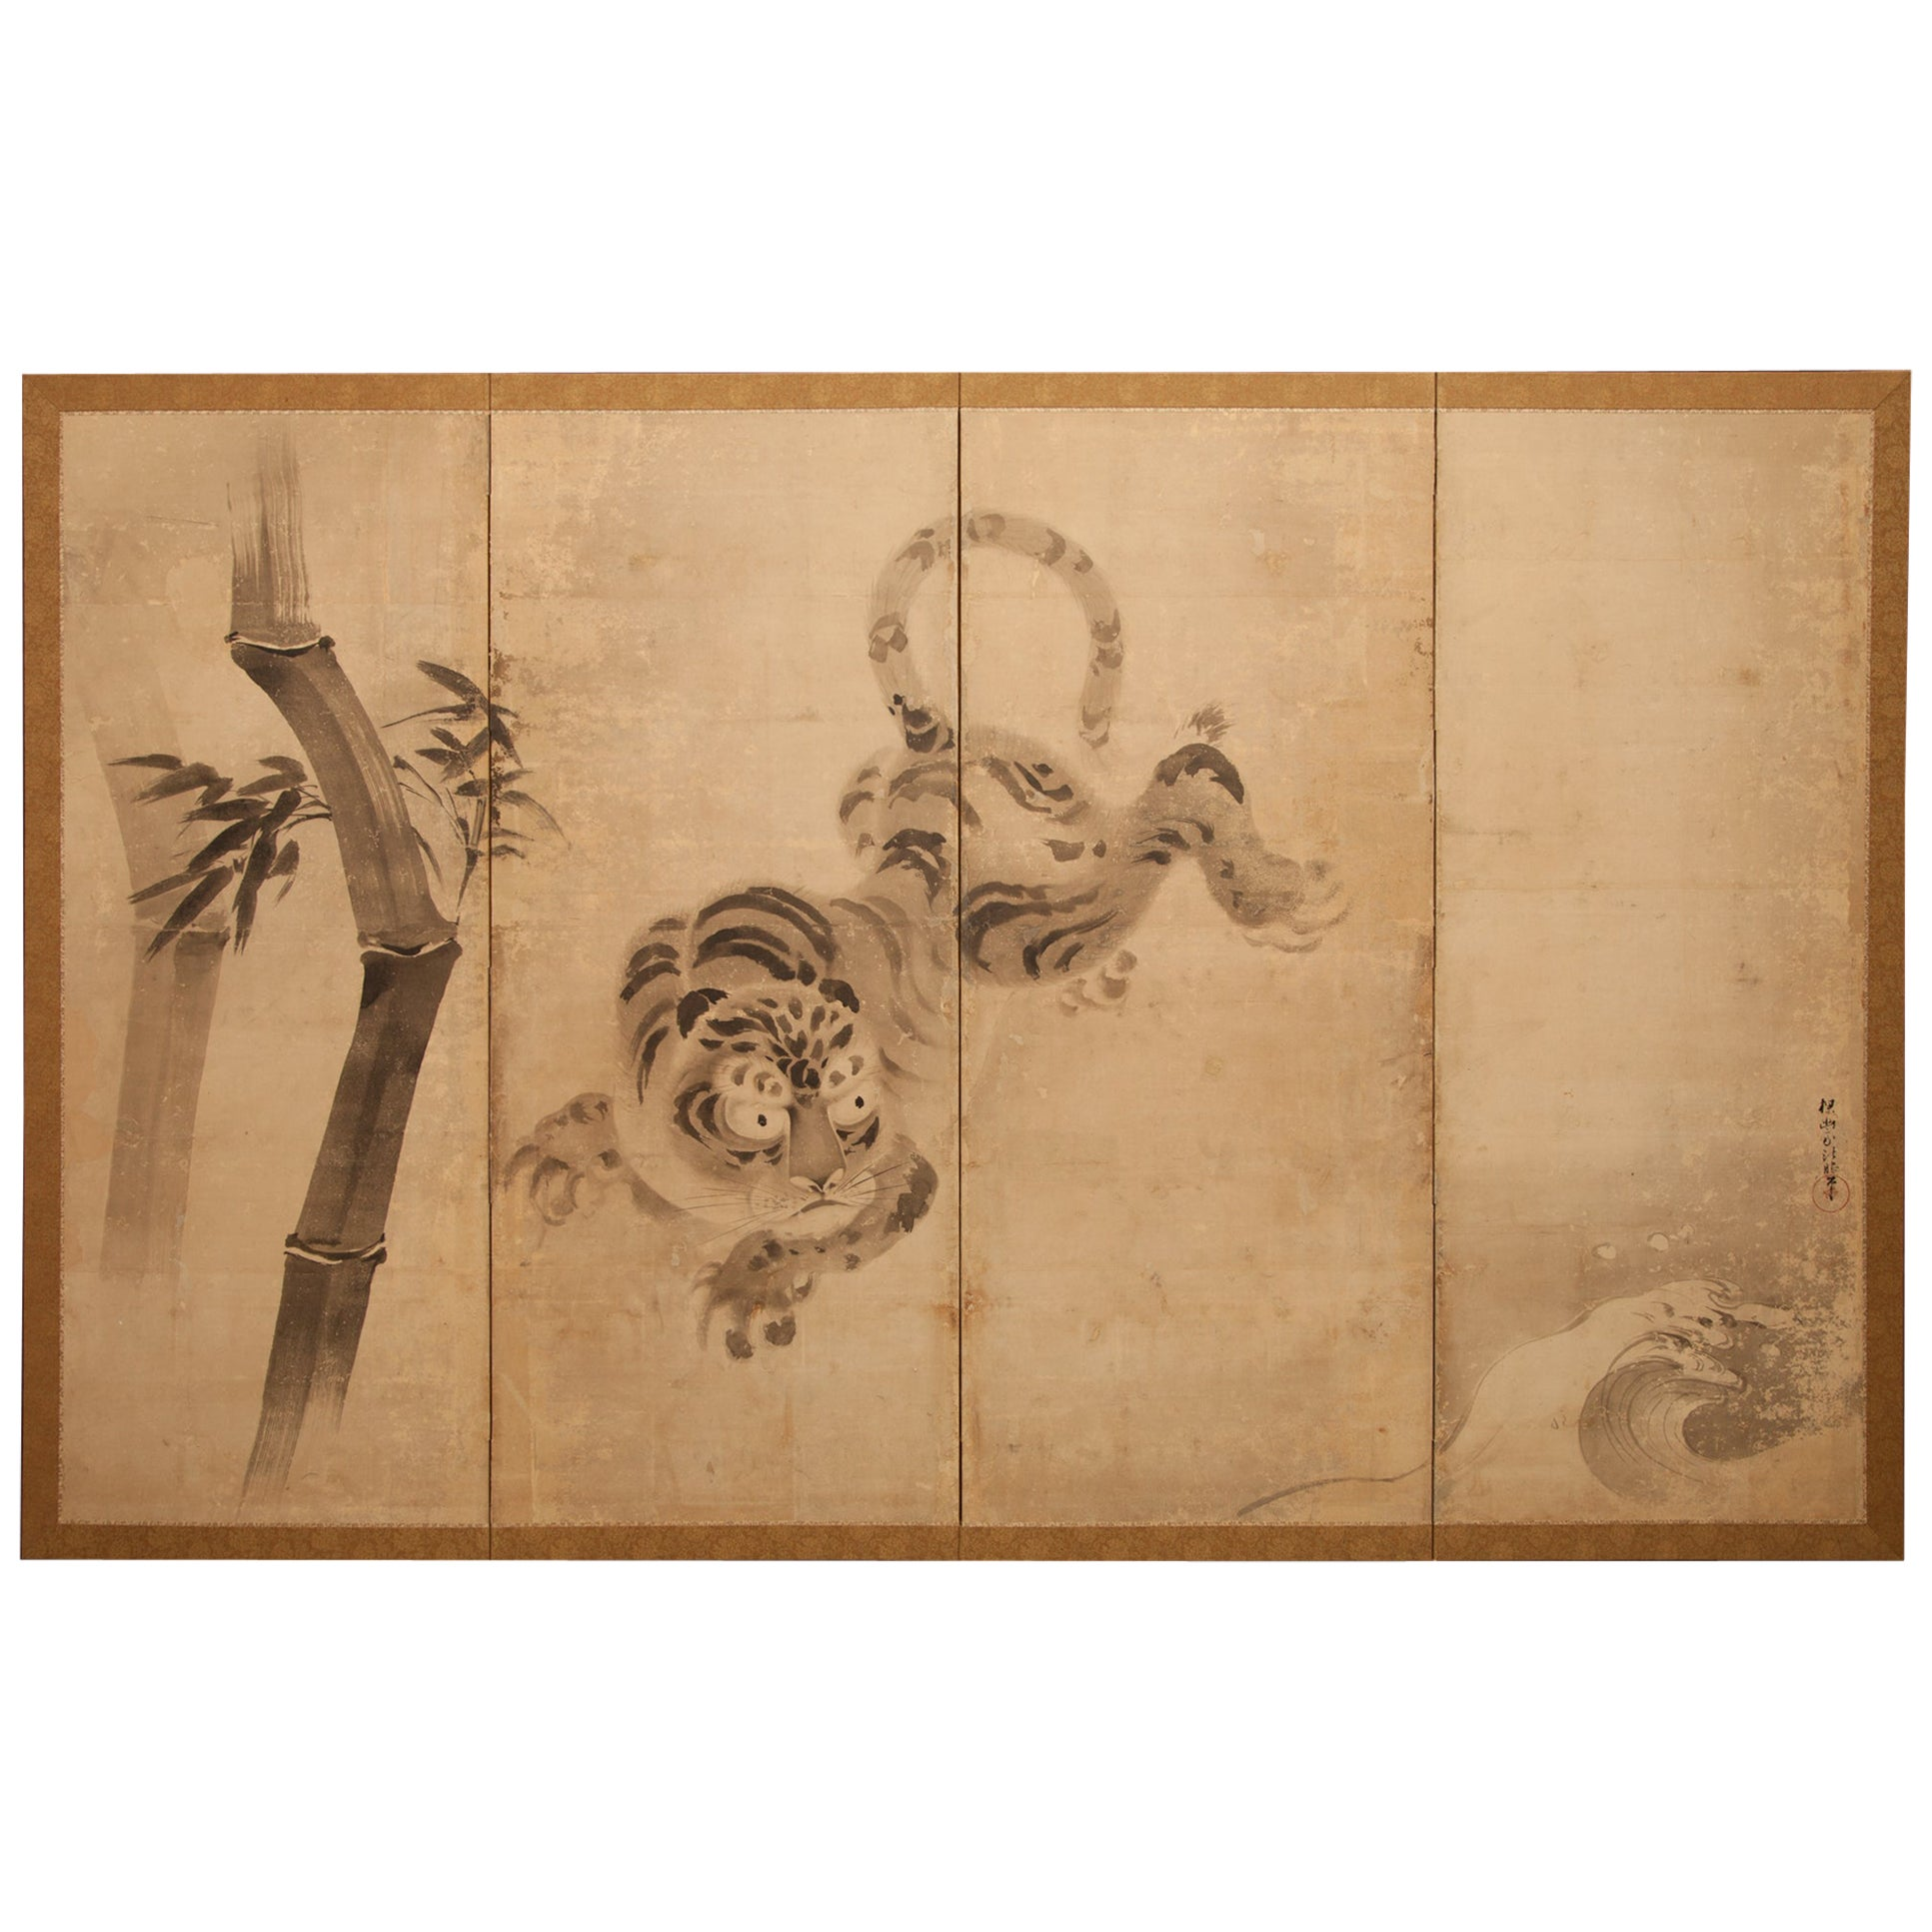 17th Century Japanese Four Panel Screen Leaping Tiger and Bamboo